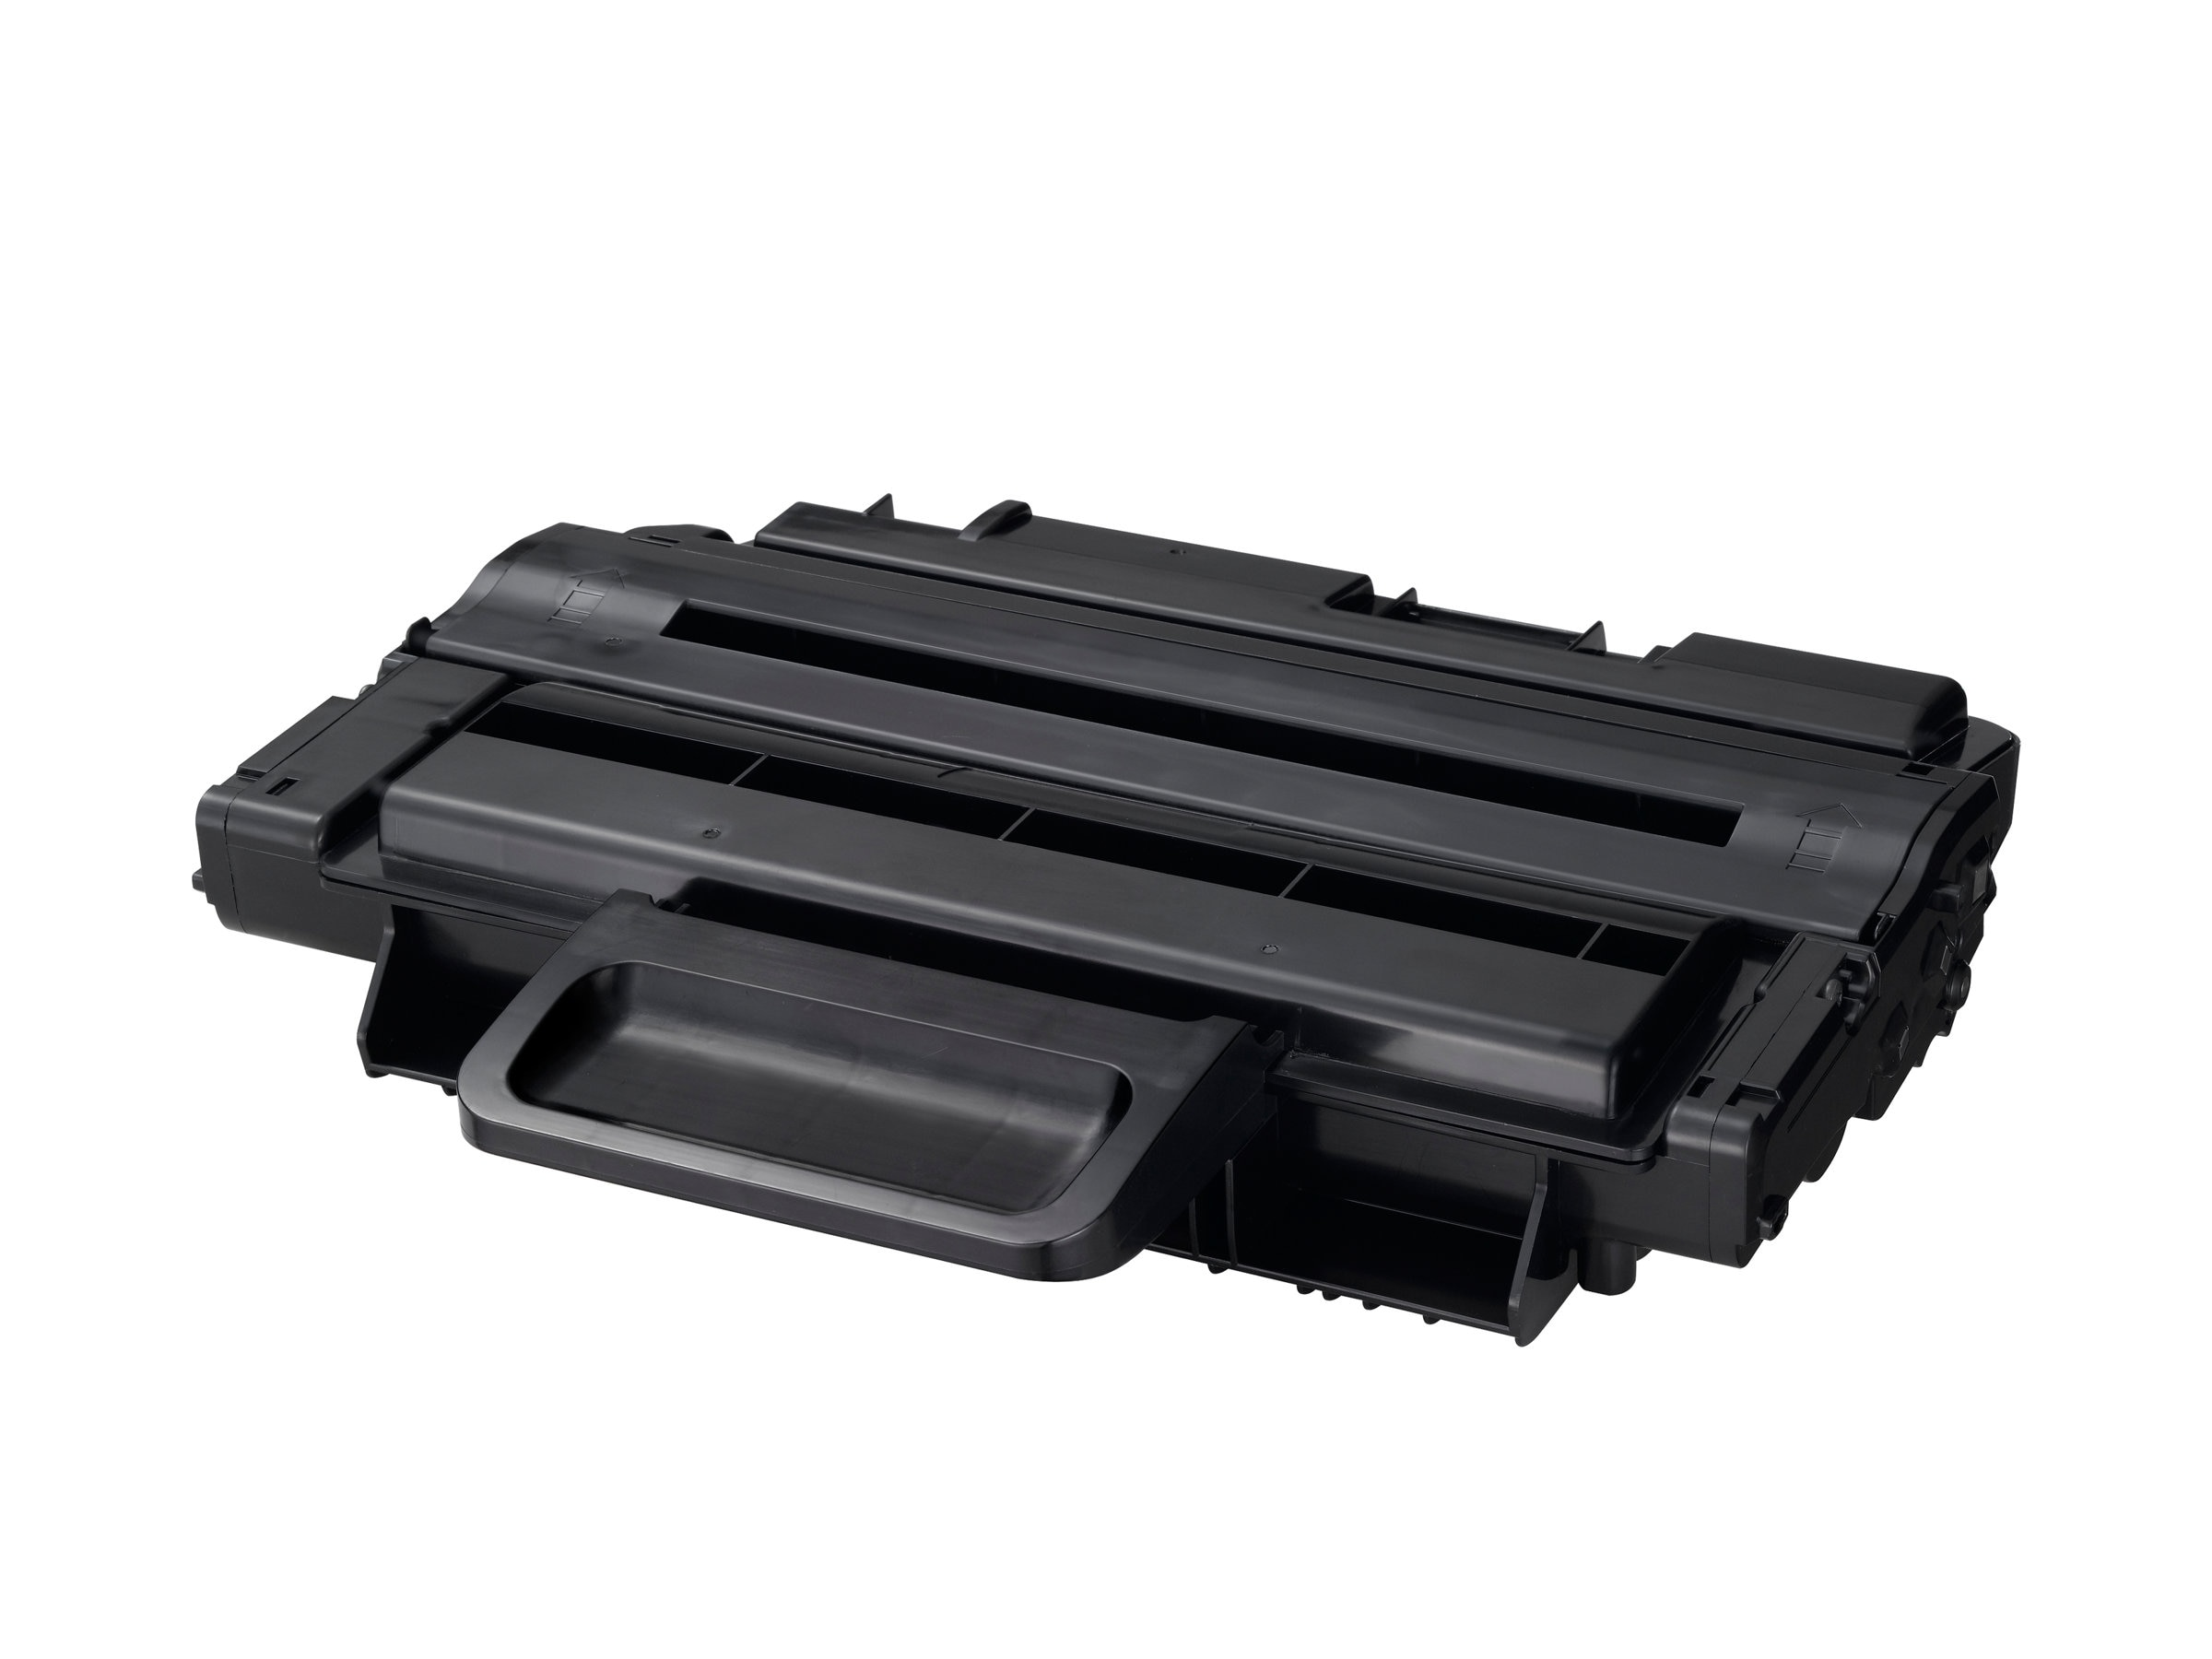 Samsung Black High Capacity Toner Cartridge for Samsung ML-2851 Printer, ML-D2850B, 8224244, Toner and Imaging Components